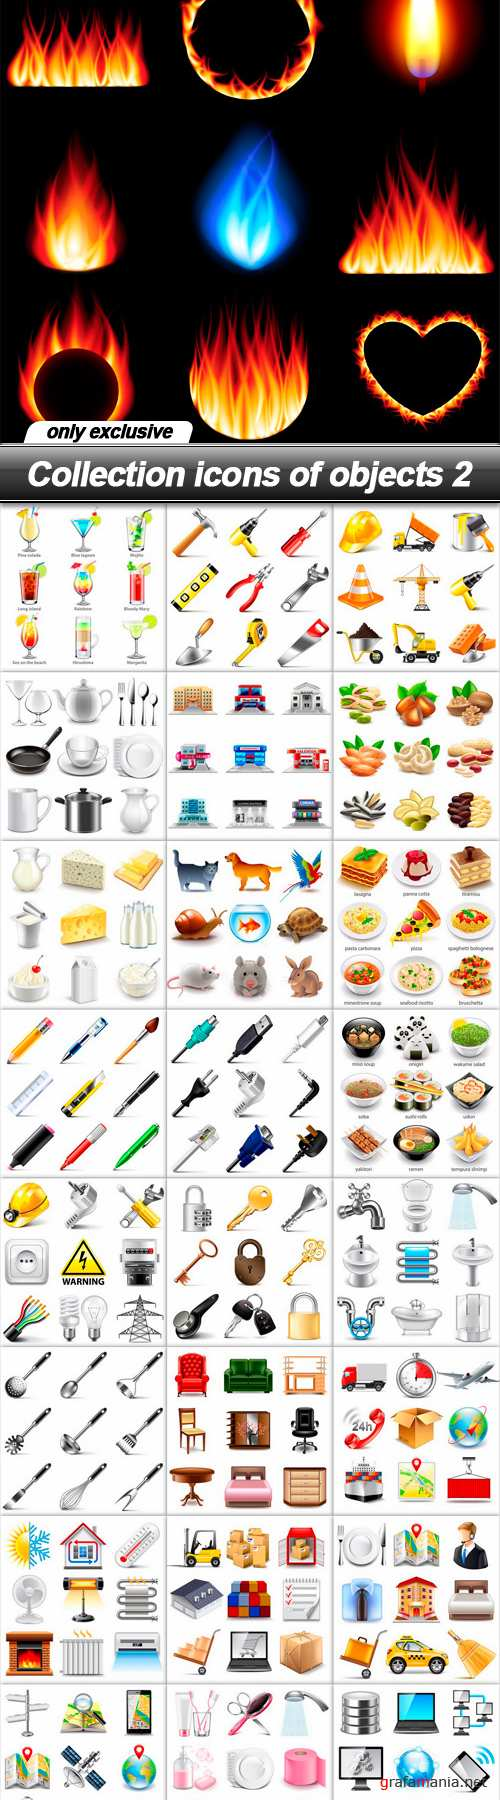 Collection icons of objects 2